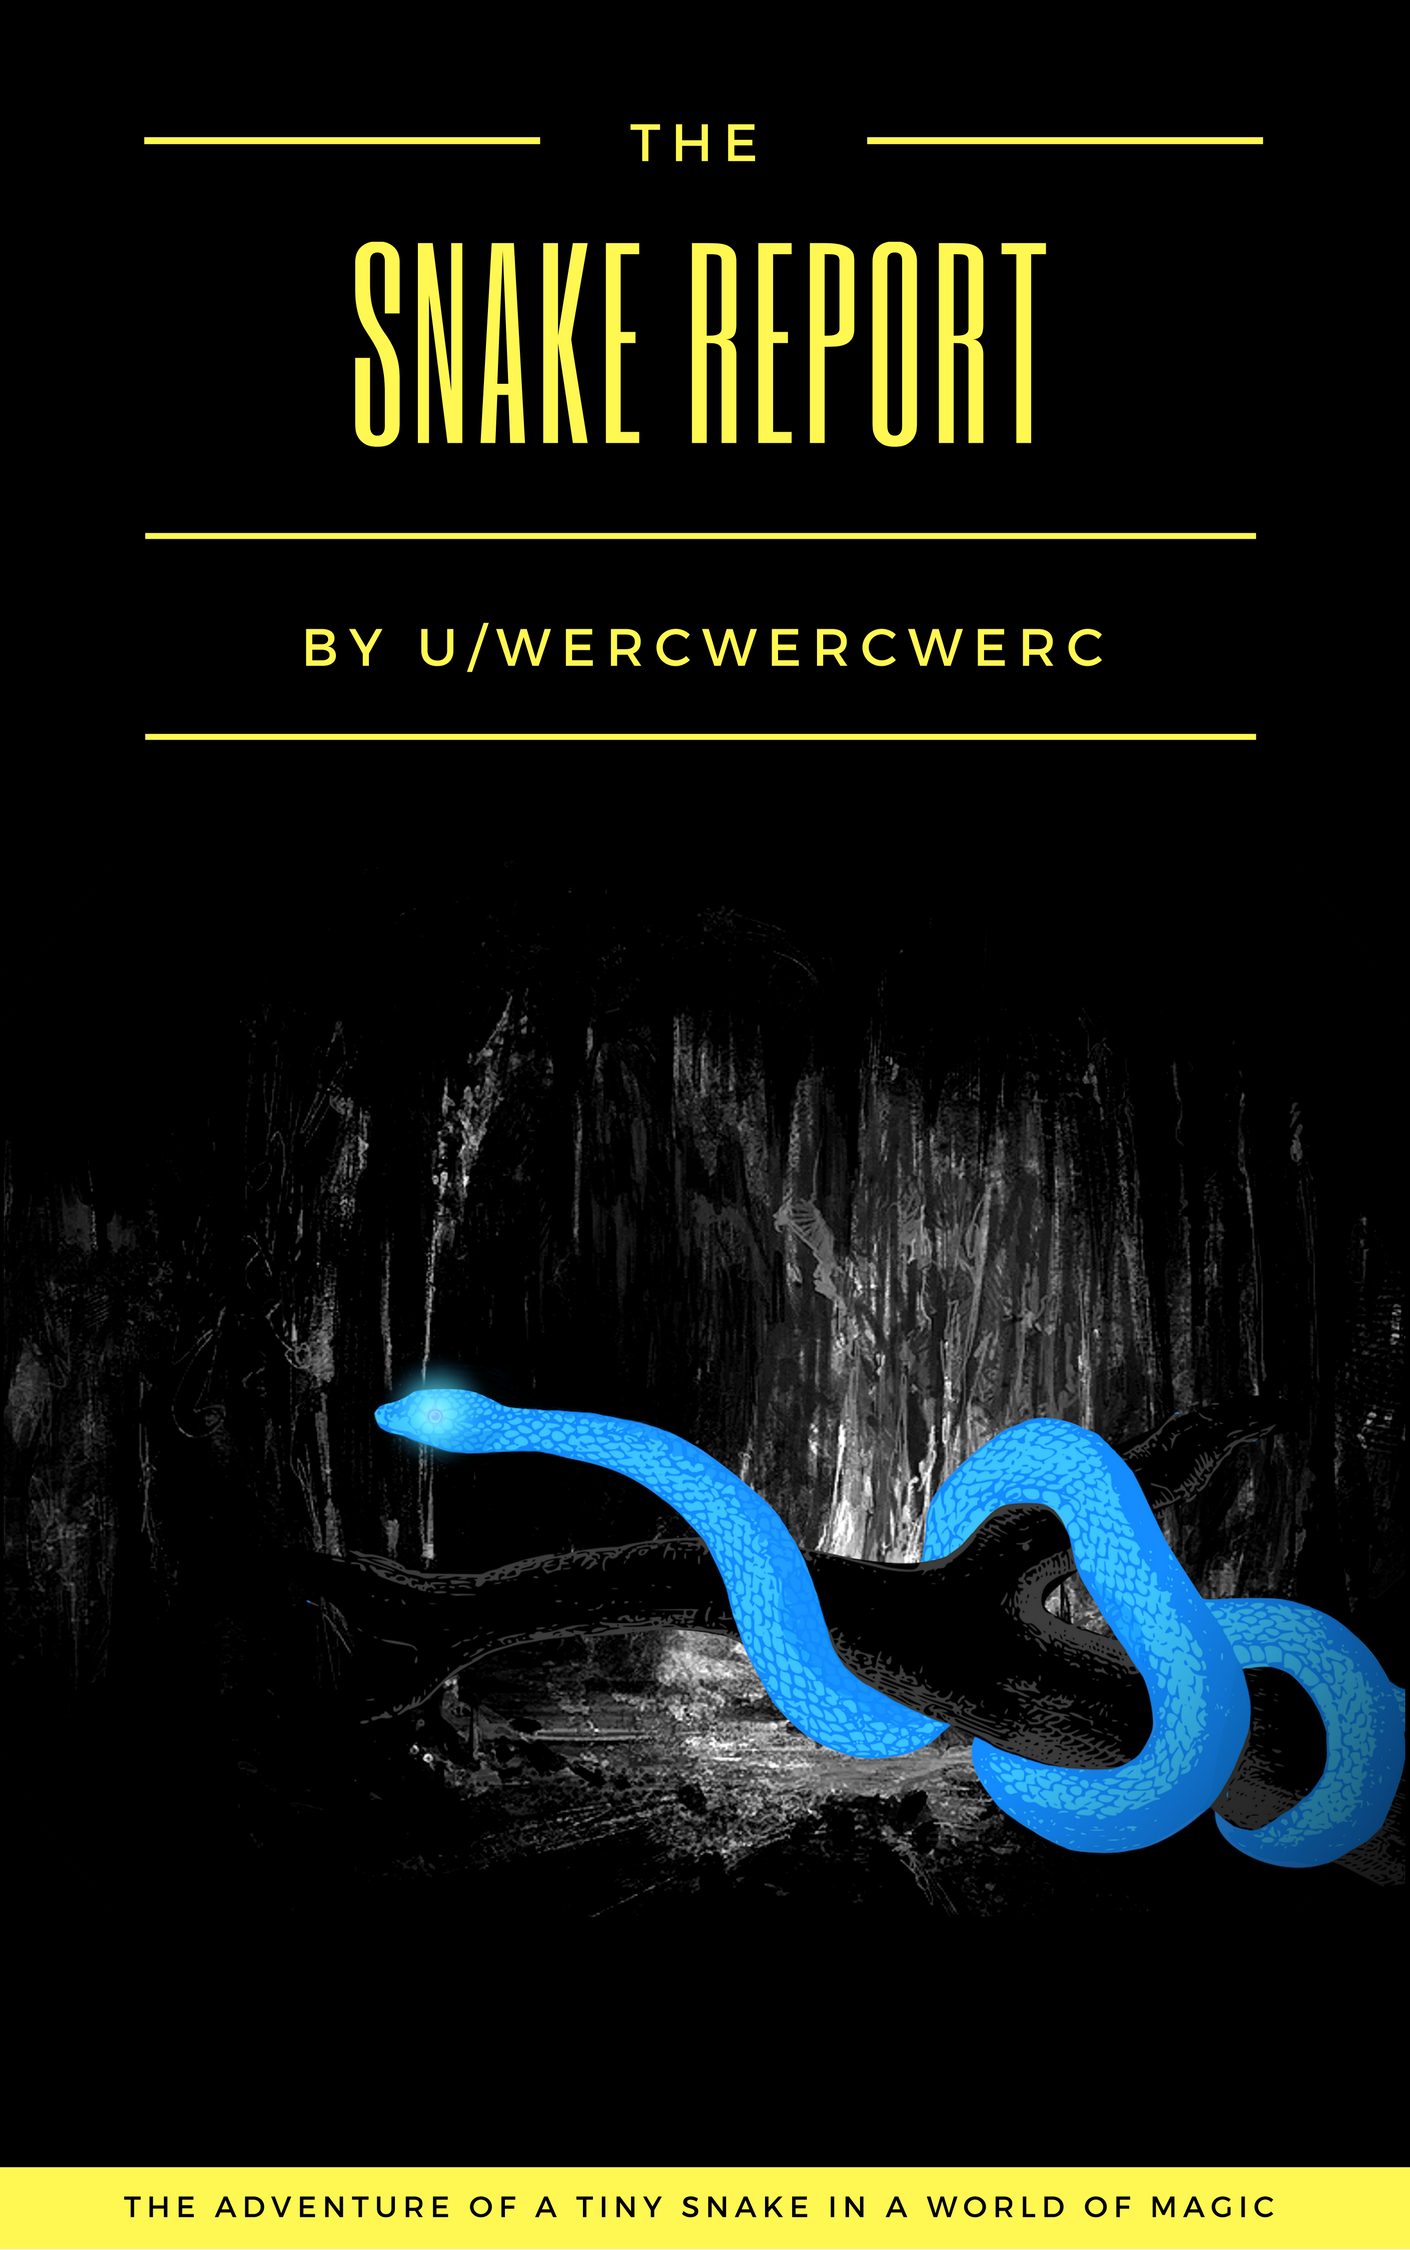 All Hail the Tiny Snake God!   - Welcome to the Snake Report, a story of reincarnation, comedy, and the winding path towards existential redemption.Sit back, relax, and read!